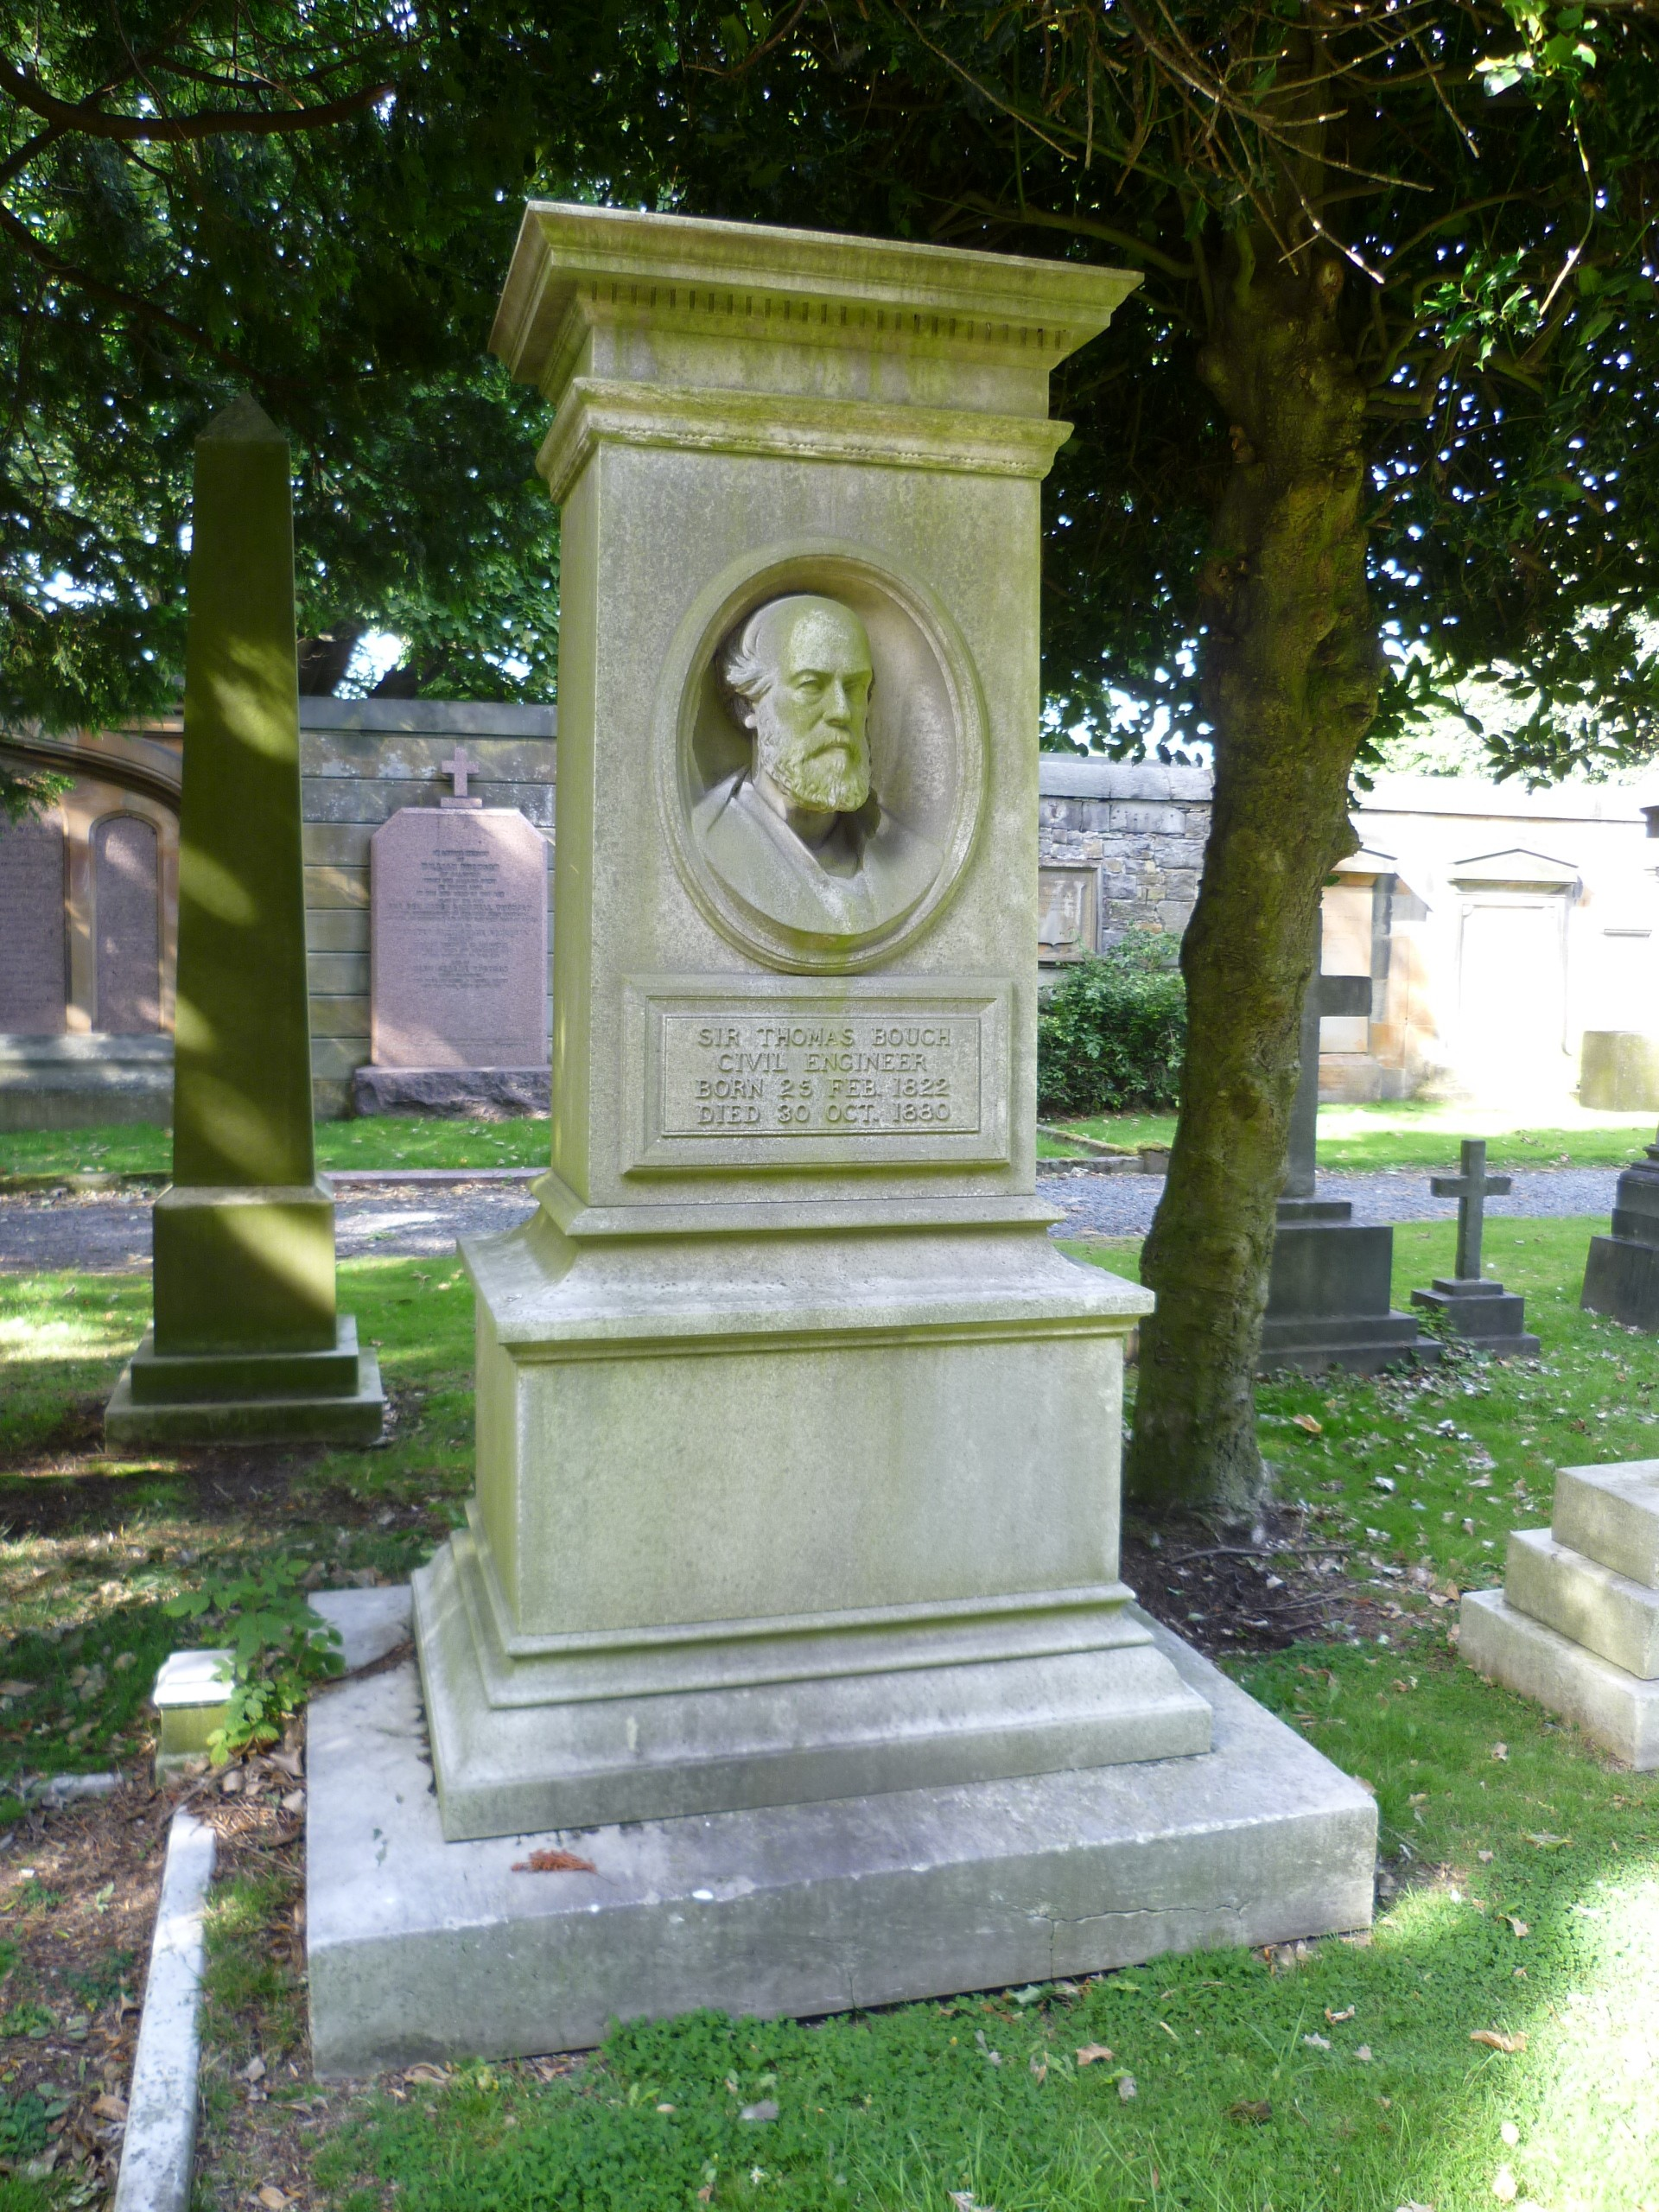 grave of sir thomas bouch, dean cemetery edinburgh.jpg